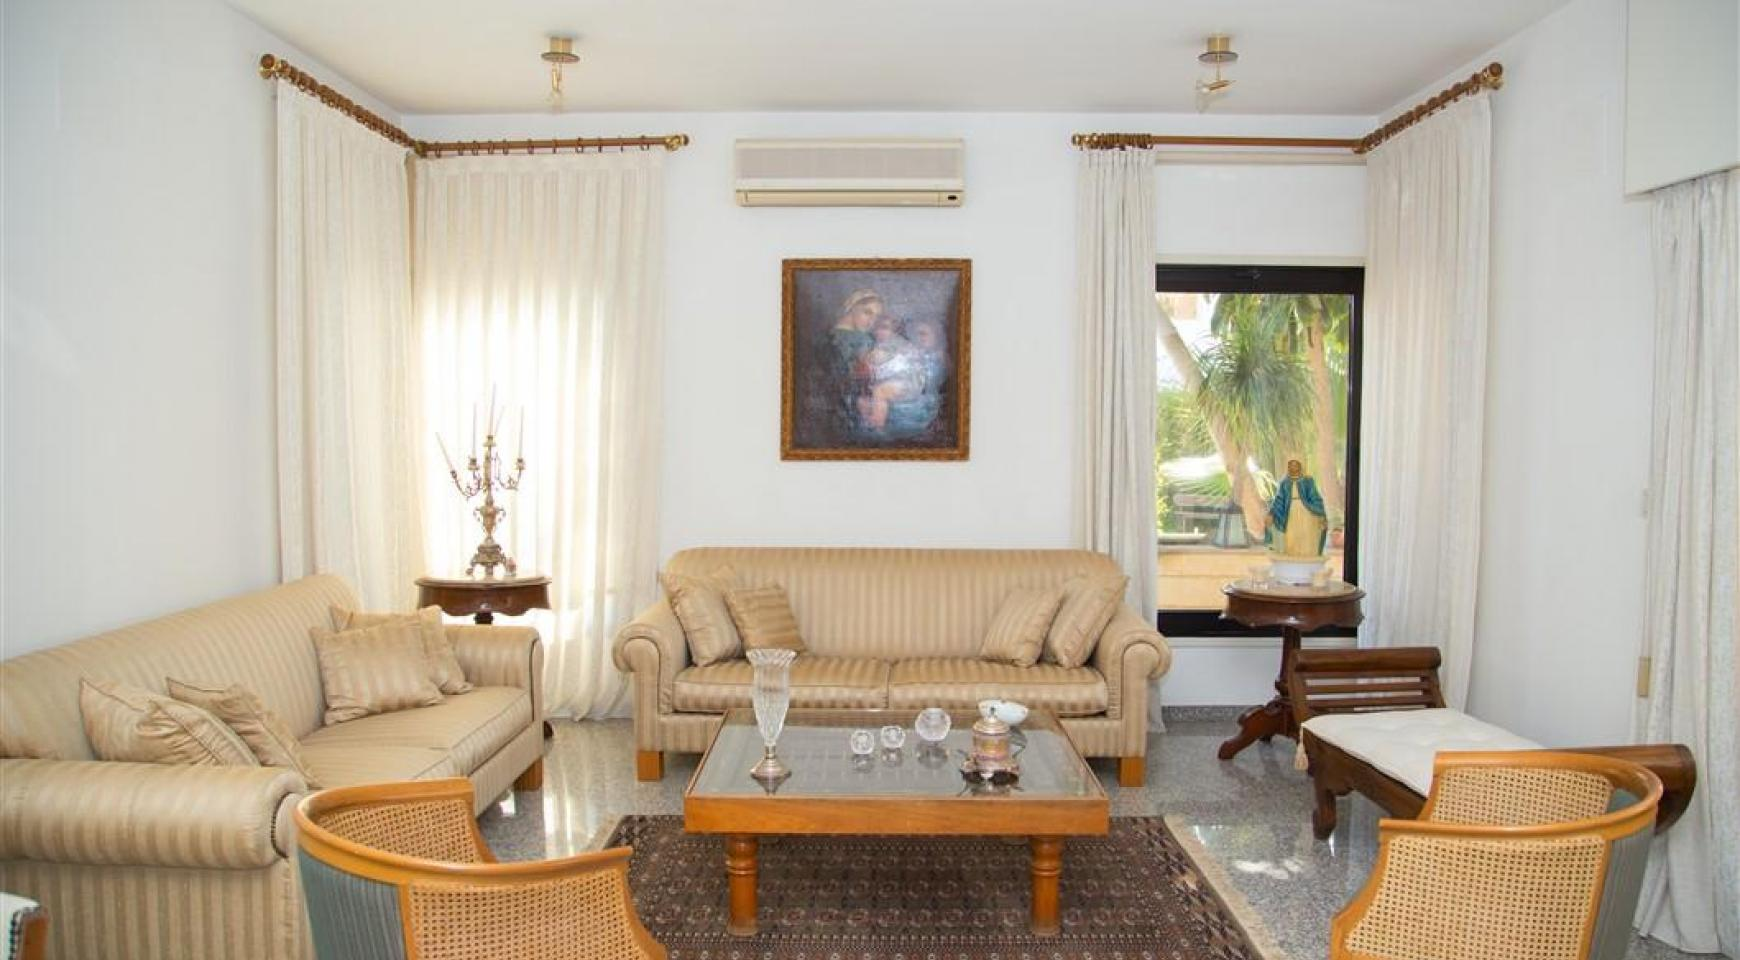 4 Bedroom Villa in Germasogeia Area - 11